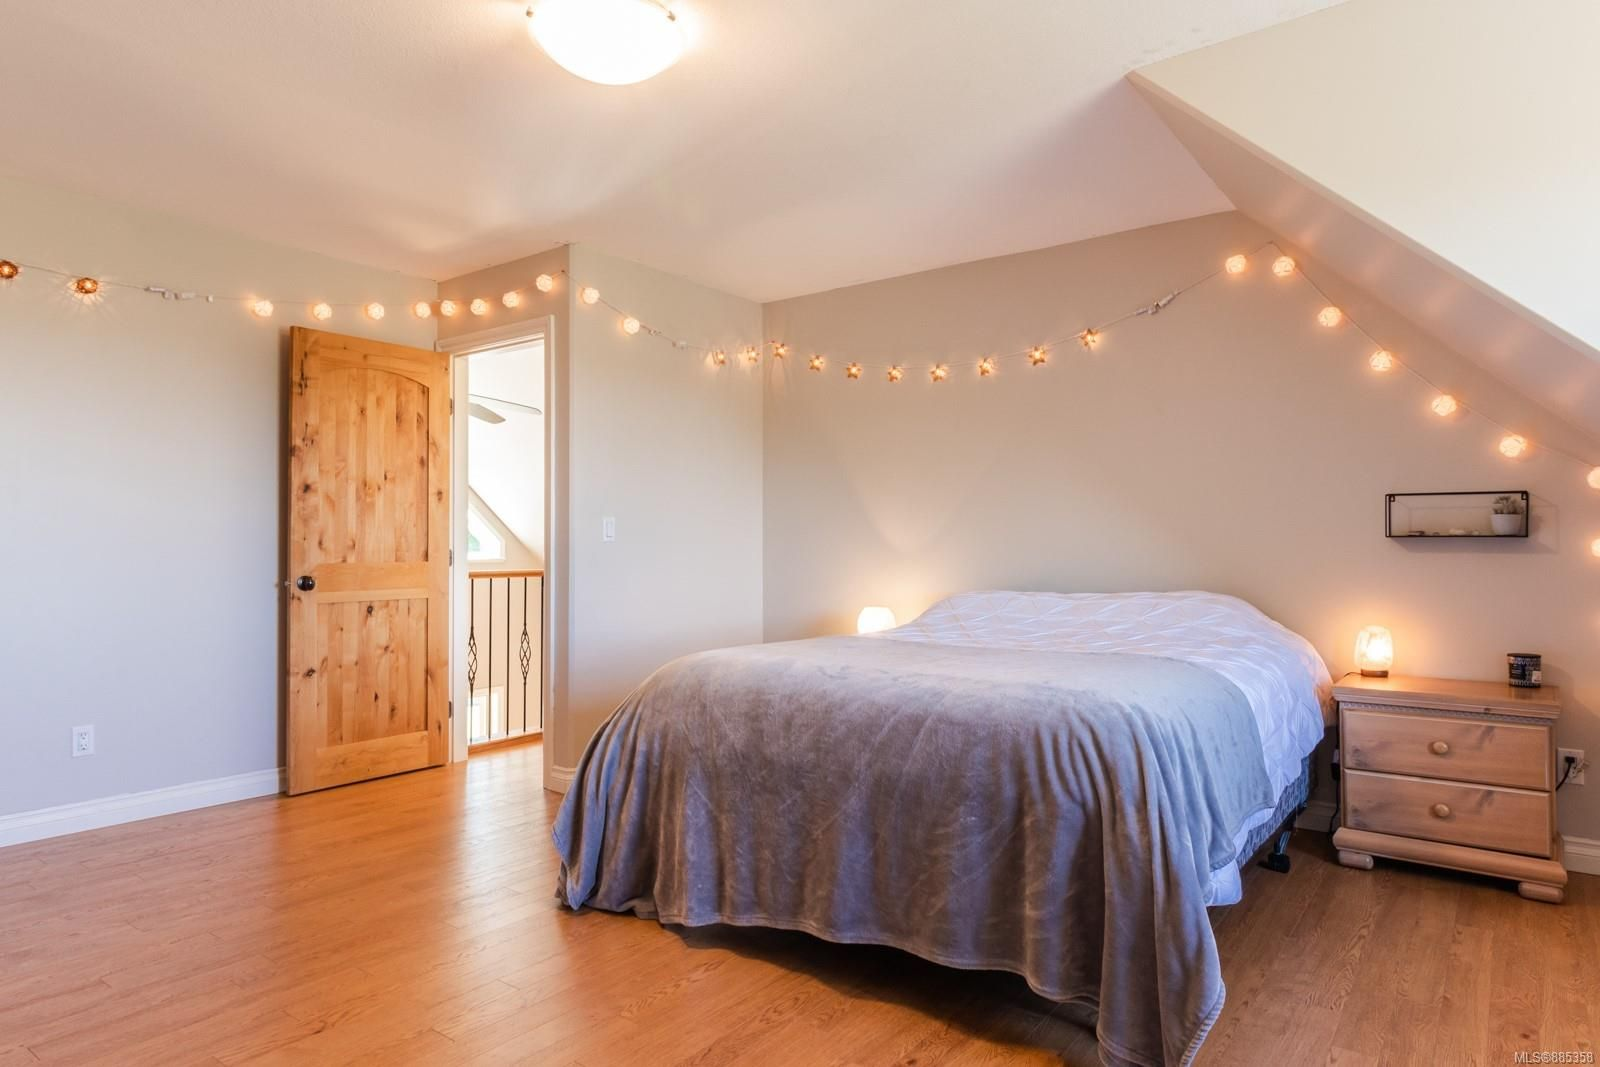 Photo 35: Photos: 2850 Peters Rd in : PQ Qualicum Beach House for sale (Parksville/Qualicum)  : MLS®# 885358